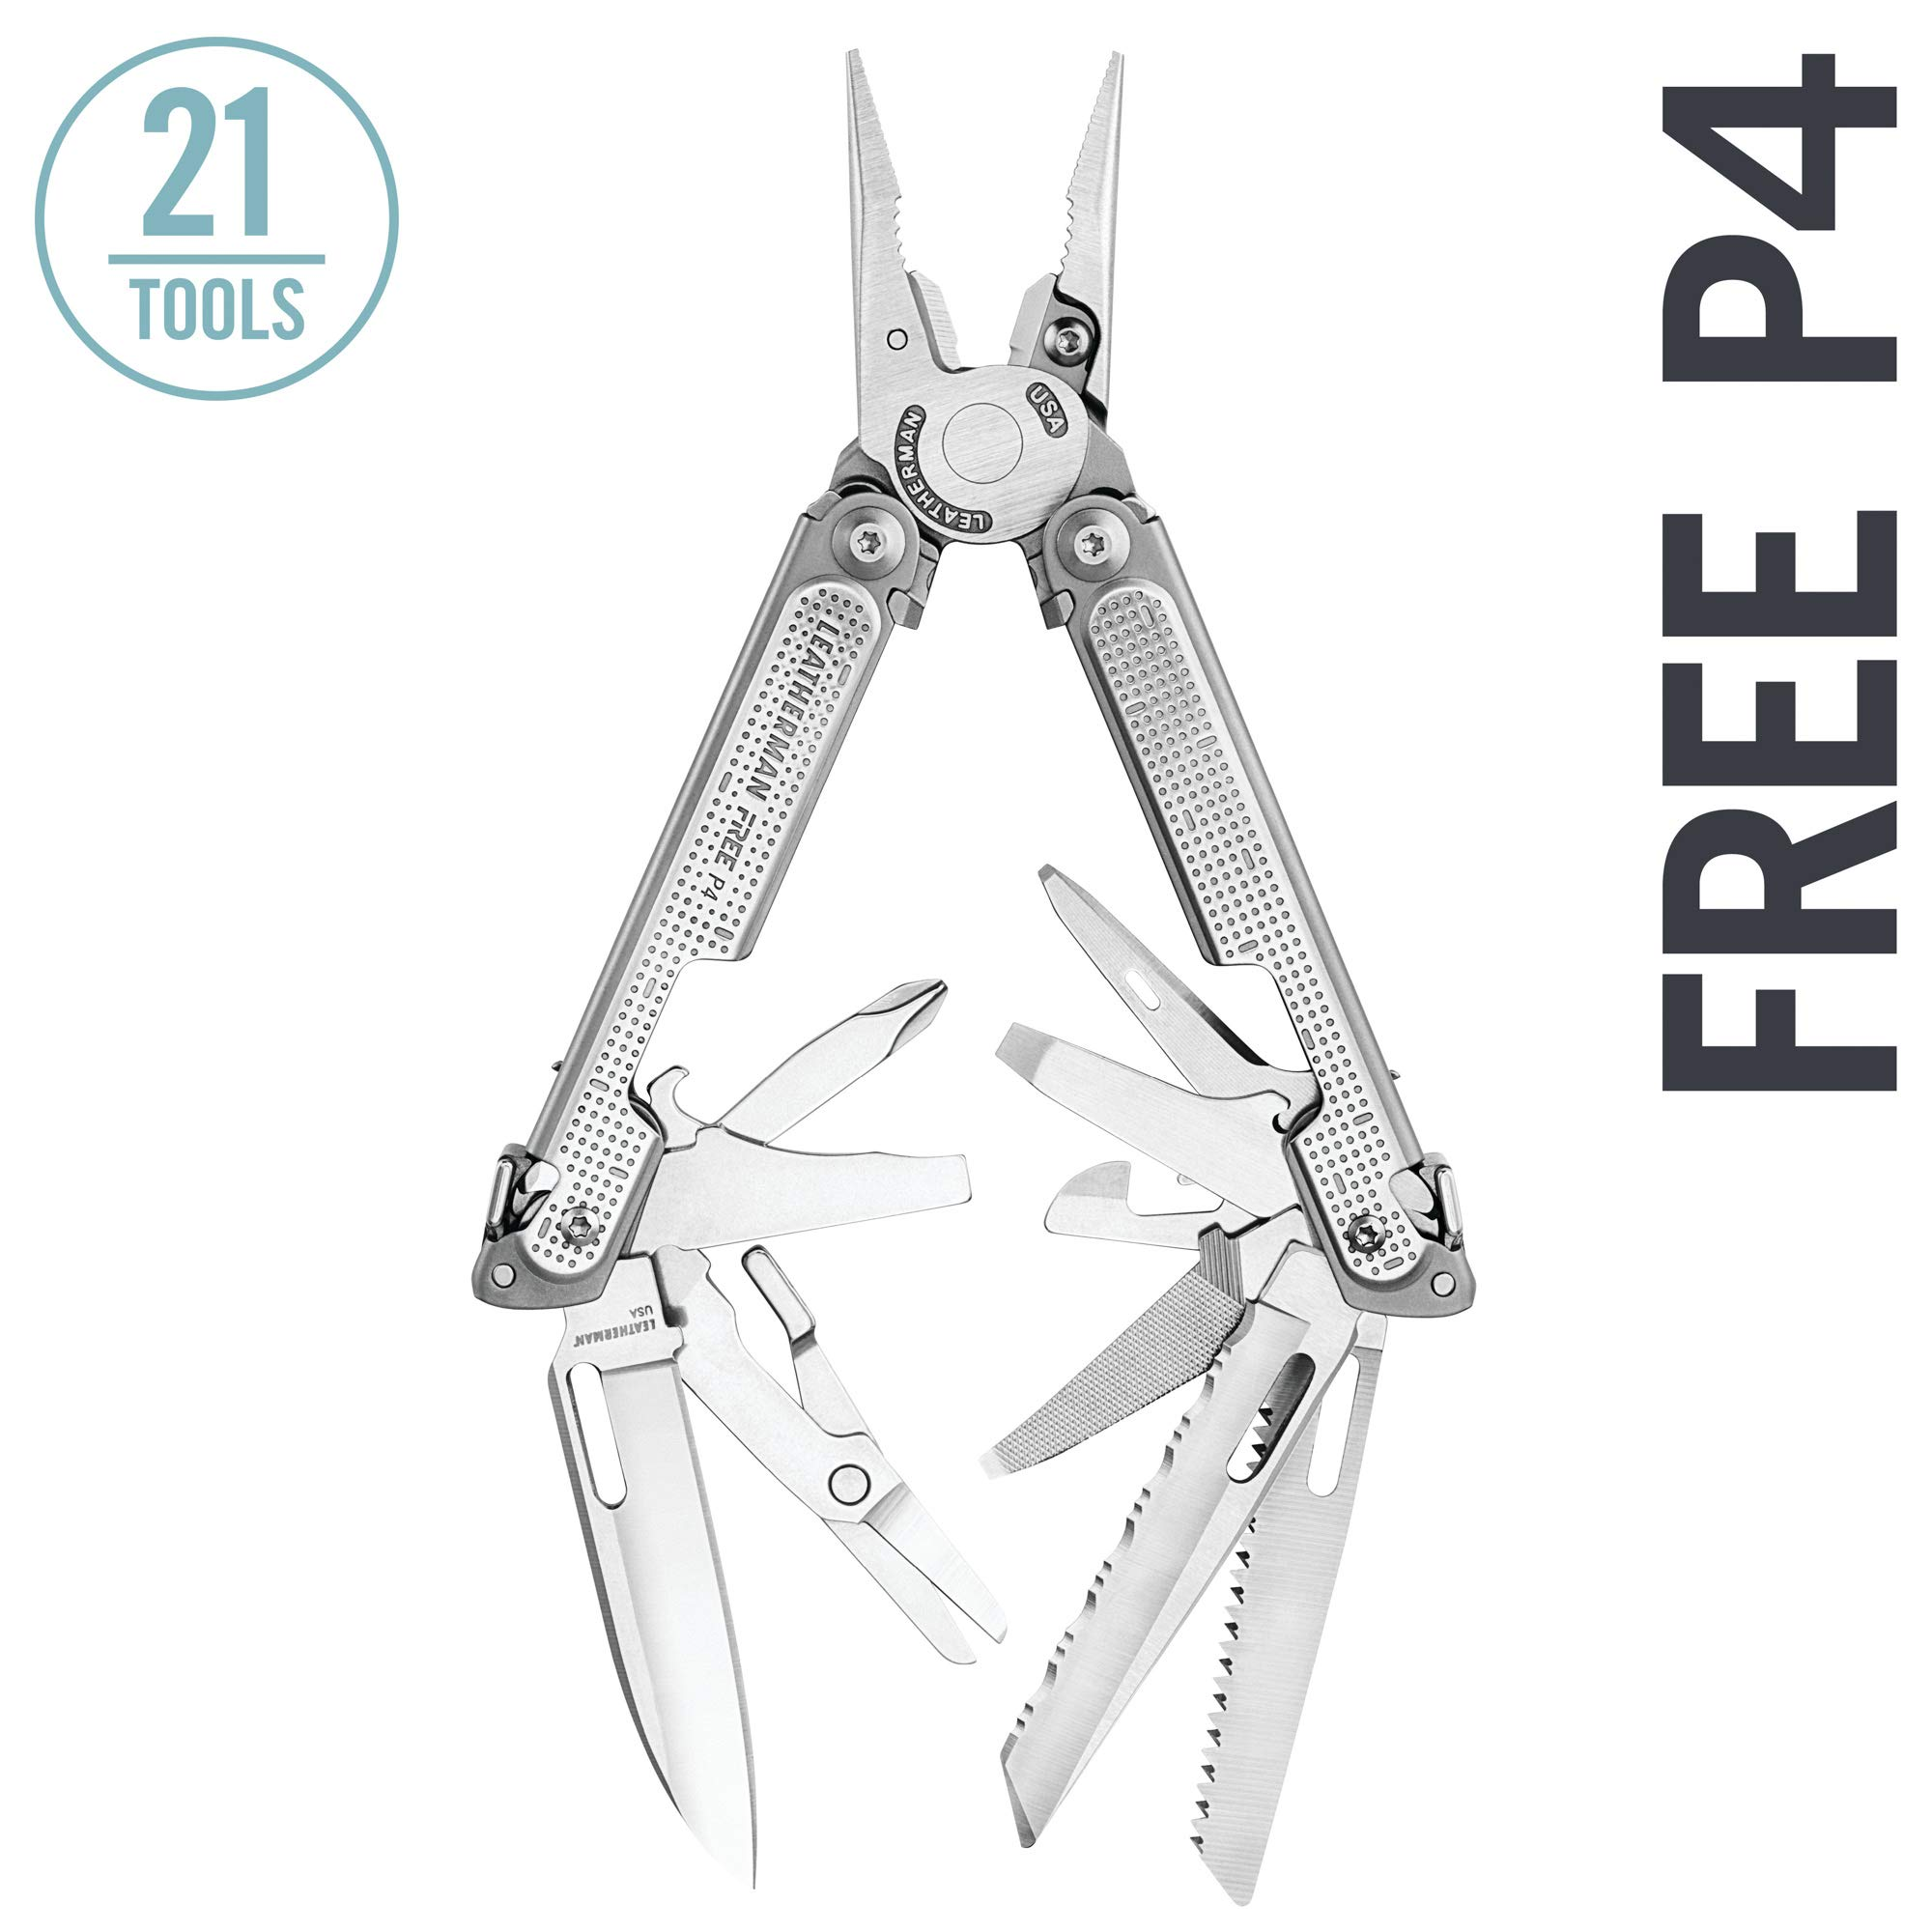 LEATHERMAN - FREE P4 Multitool with Magnetic Locking, One Hand Accessible Tools and Premium Nylon Sheath by LEATHERMAN (Image #1)